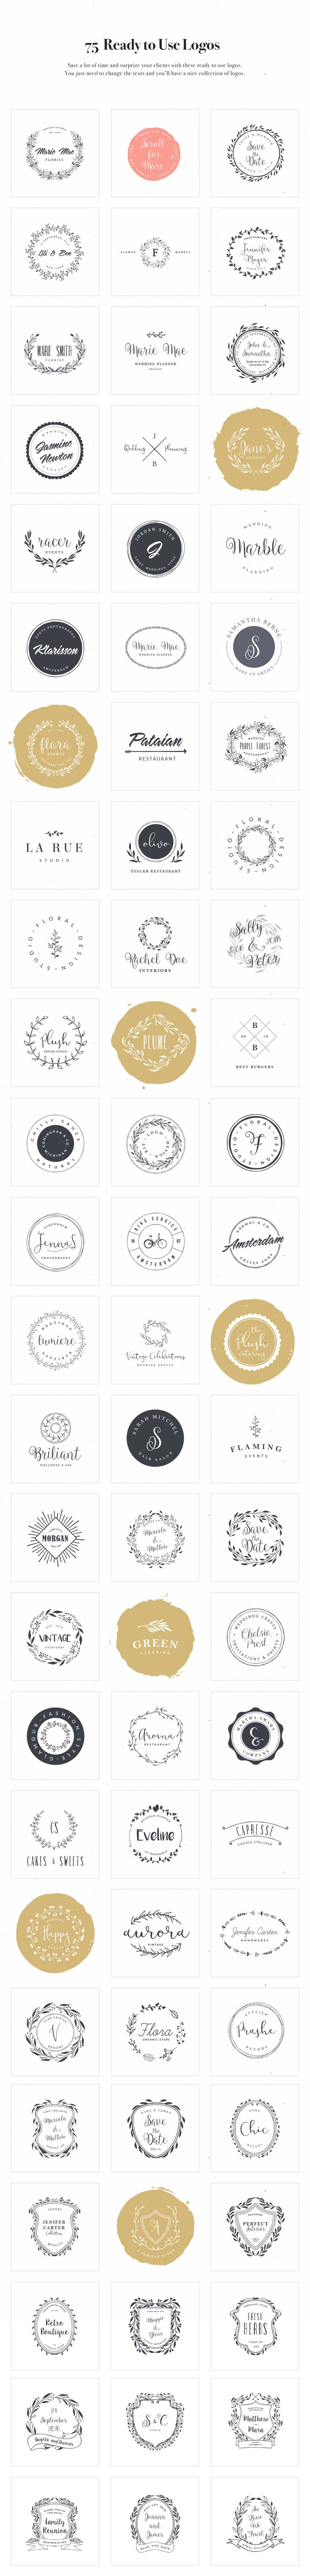 Logo Design Kit by VladCristea on @creativemarket                                                                                                                                                                                 More